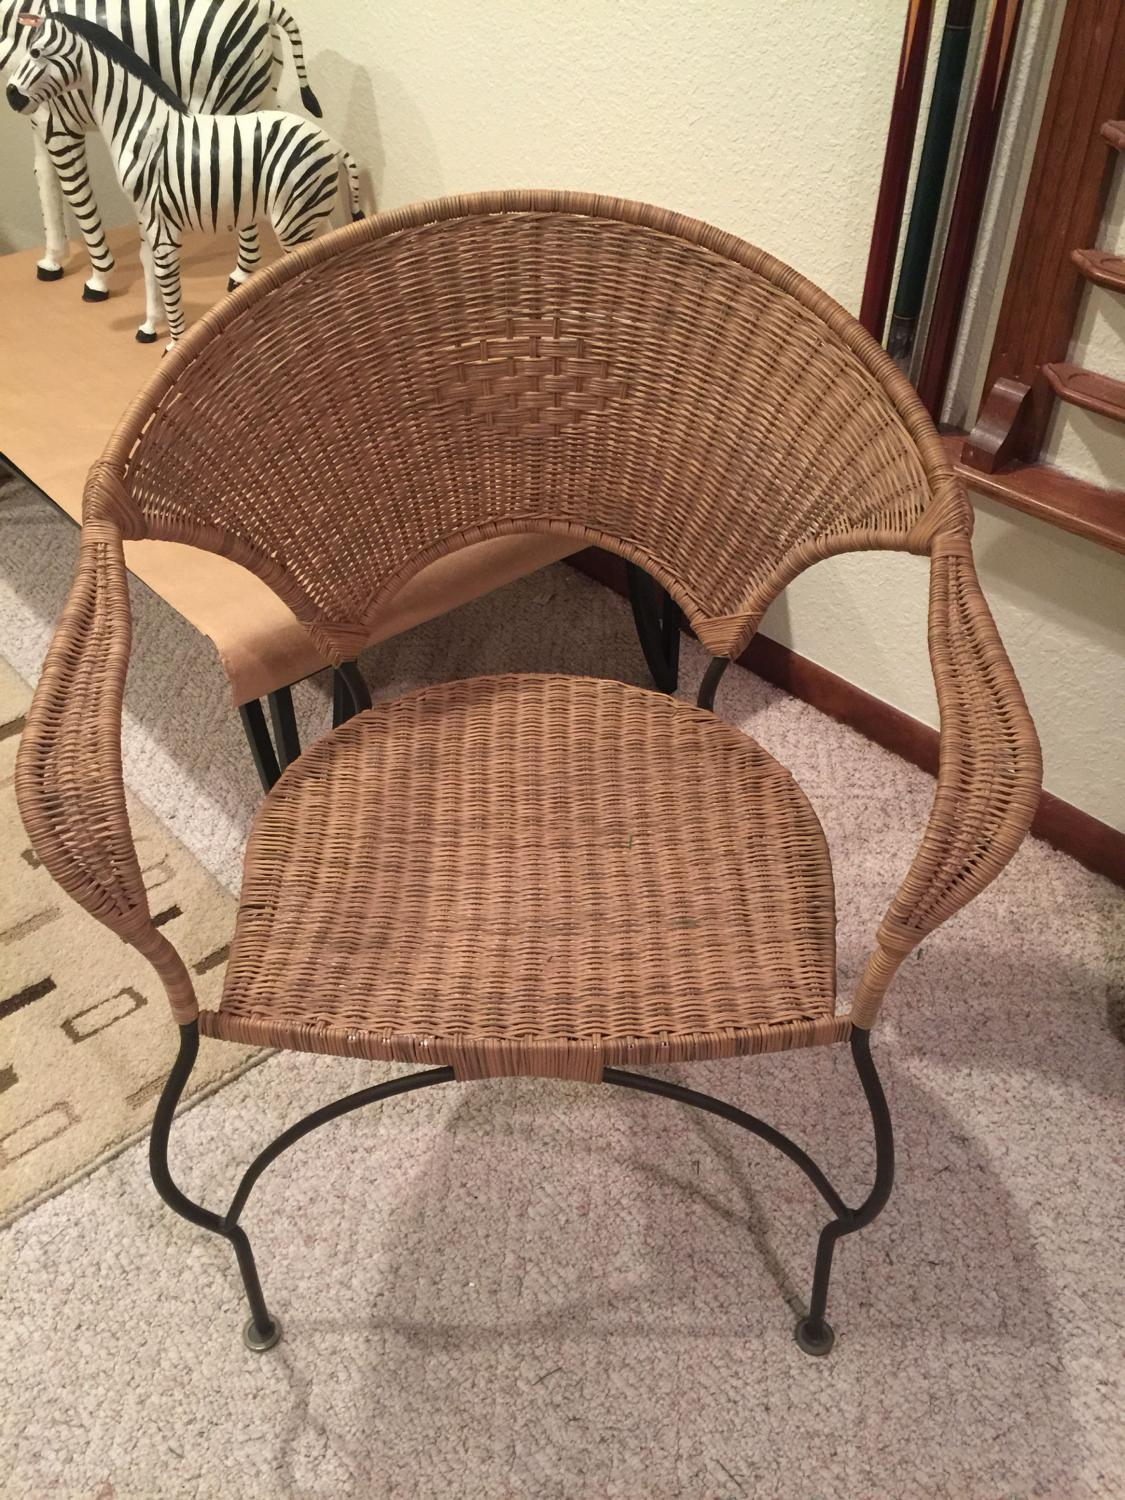 Best Set Of Two Wicker Chairs For Sale In Milwaukee Wisconsin 2021